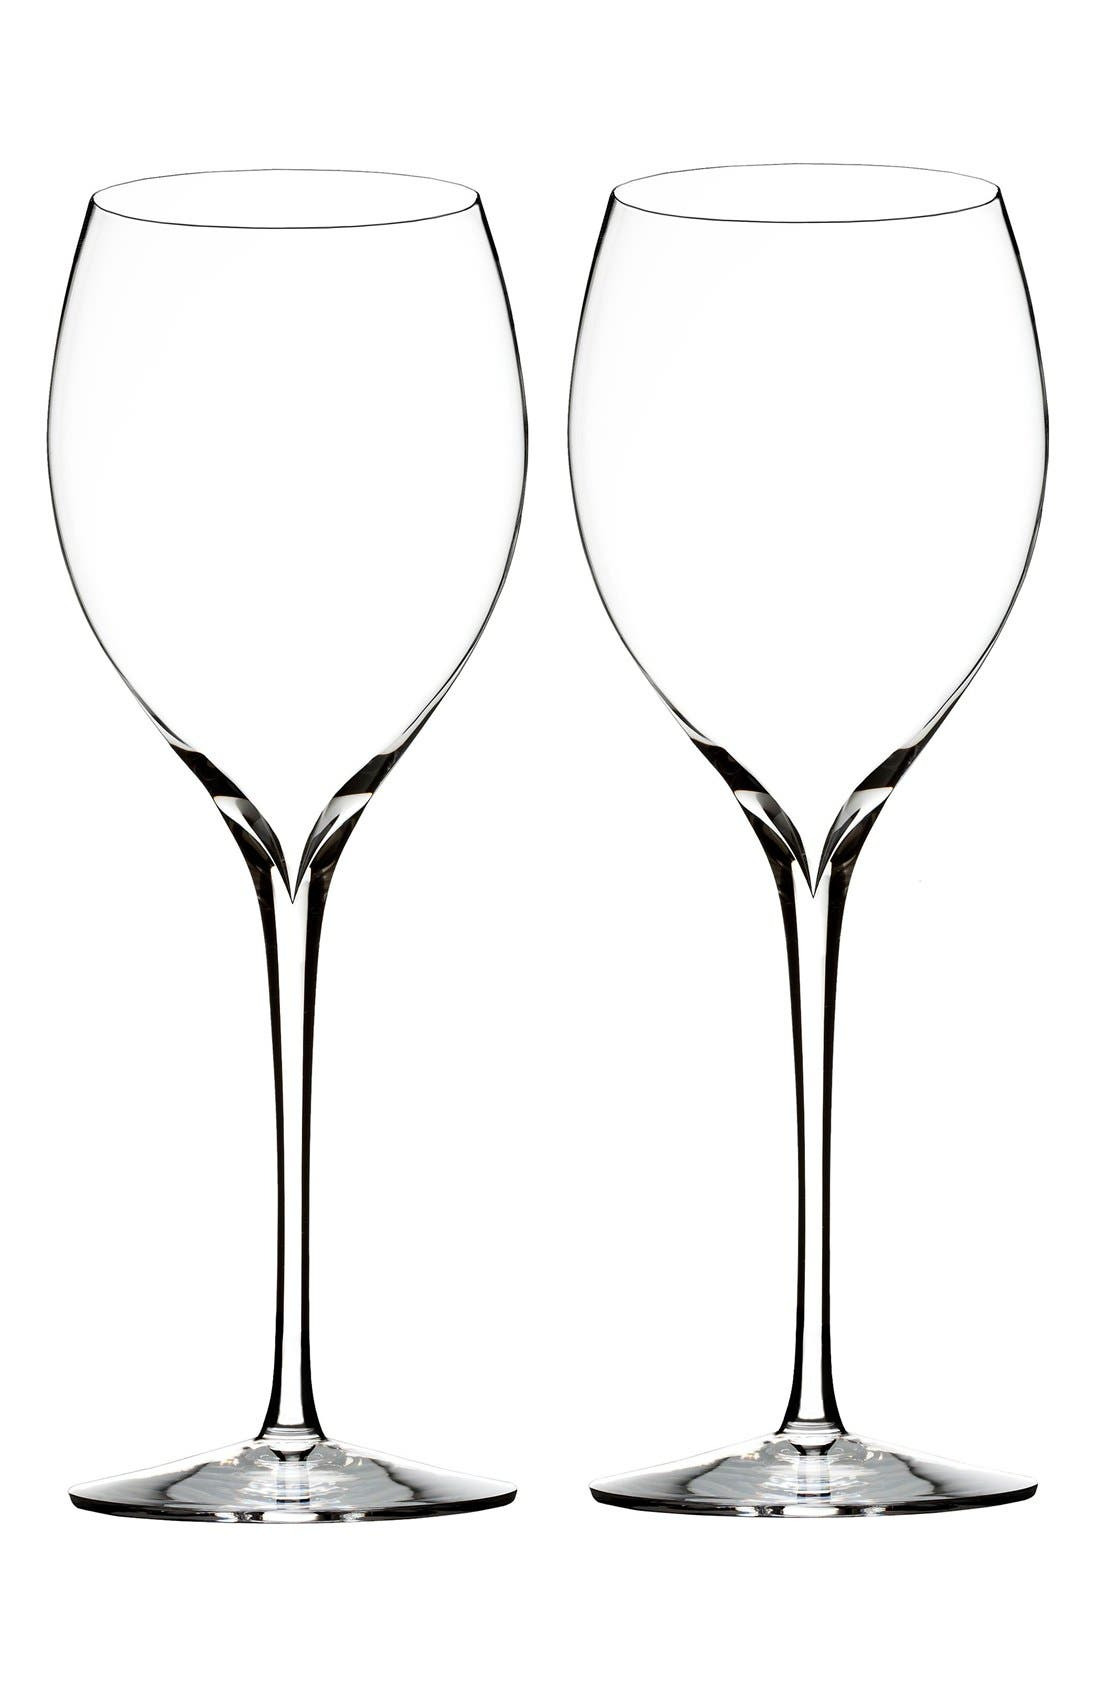 'Elegance' Fine Crystal Chardonnay Glasses,                             Main thumbnail 1, color,